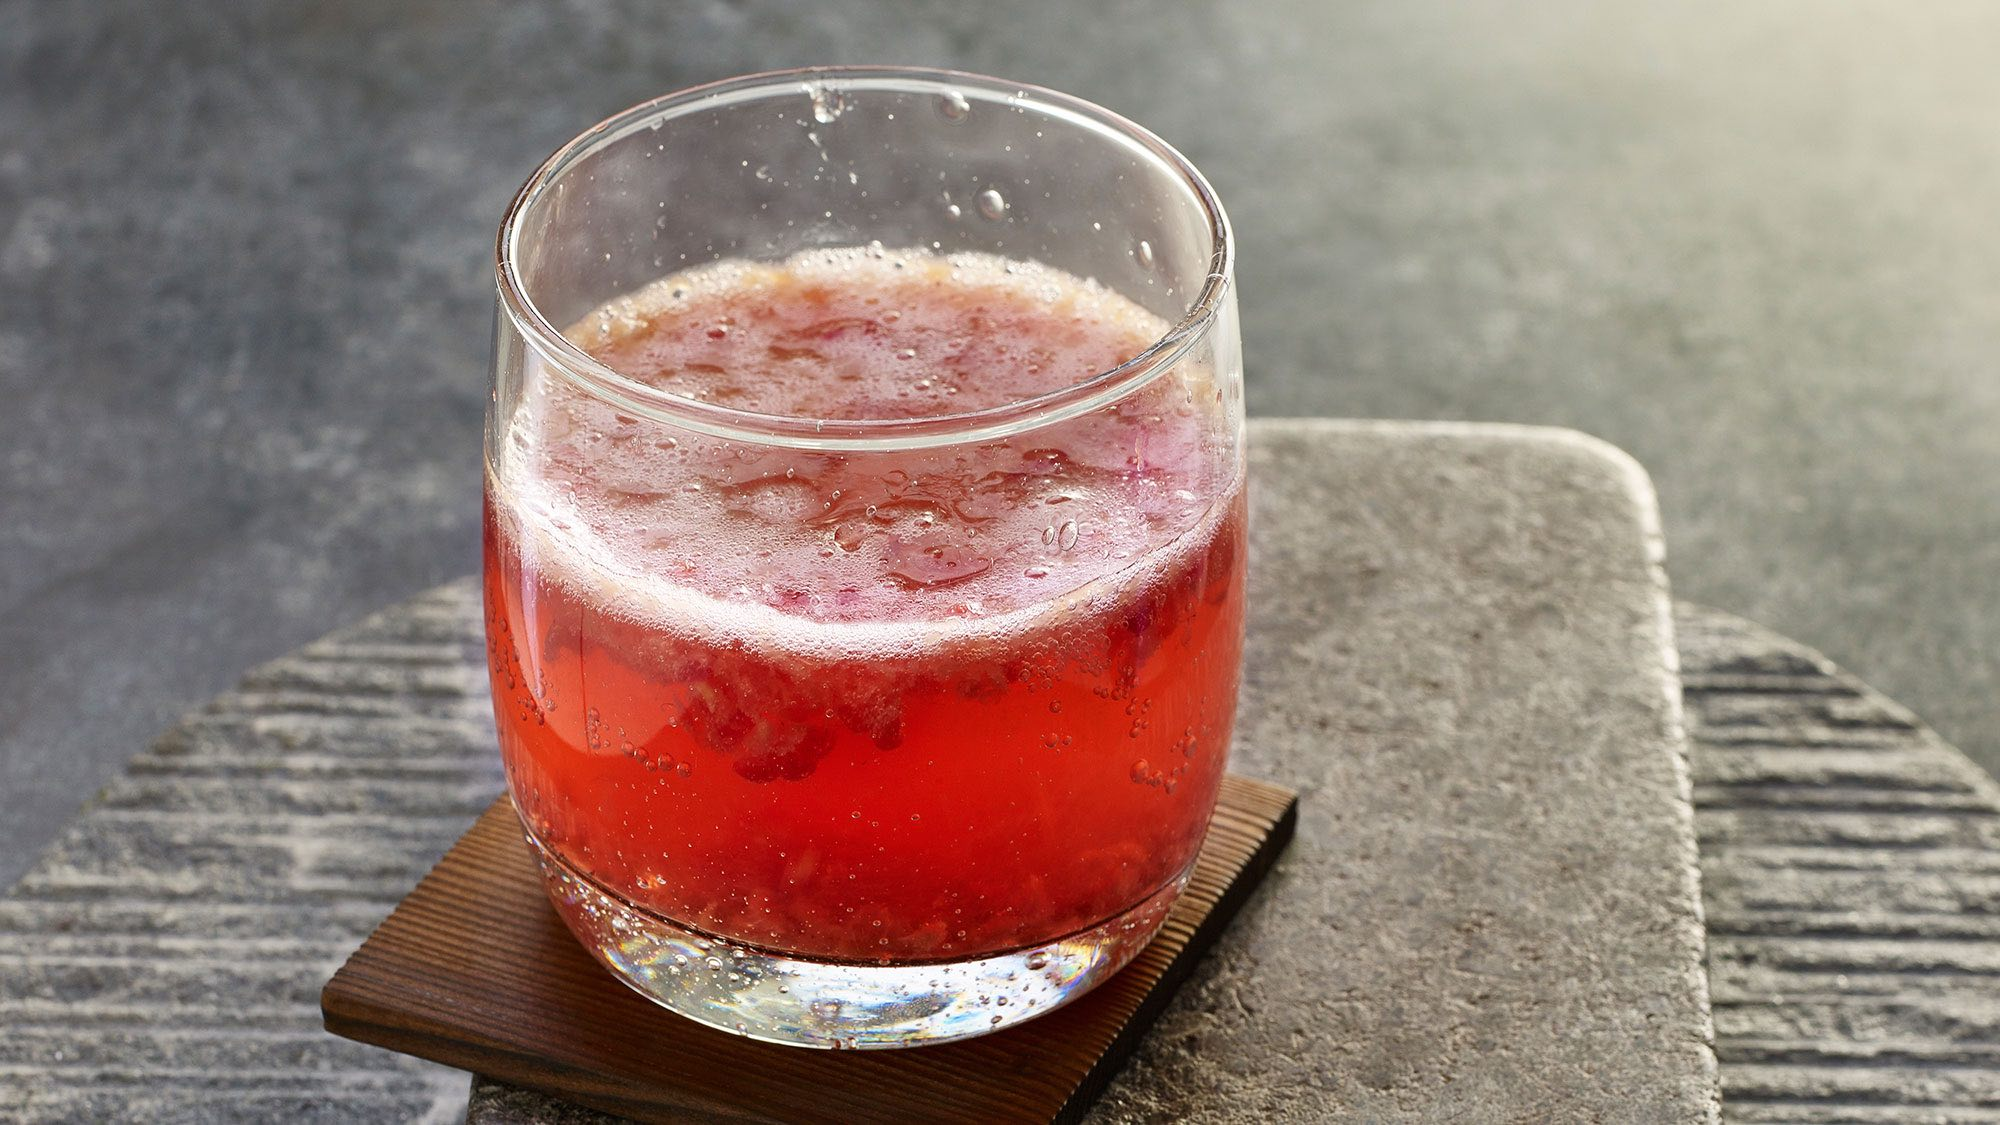 McCormick Berry Shrub Cocktail